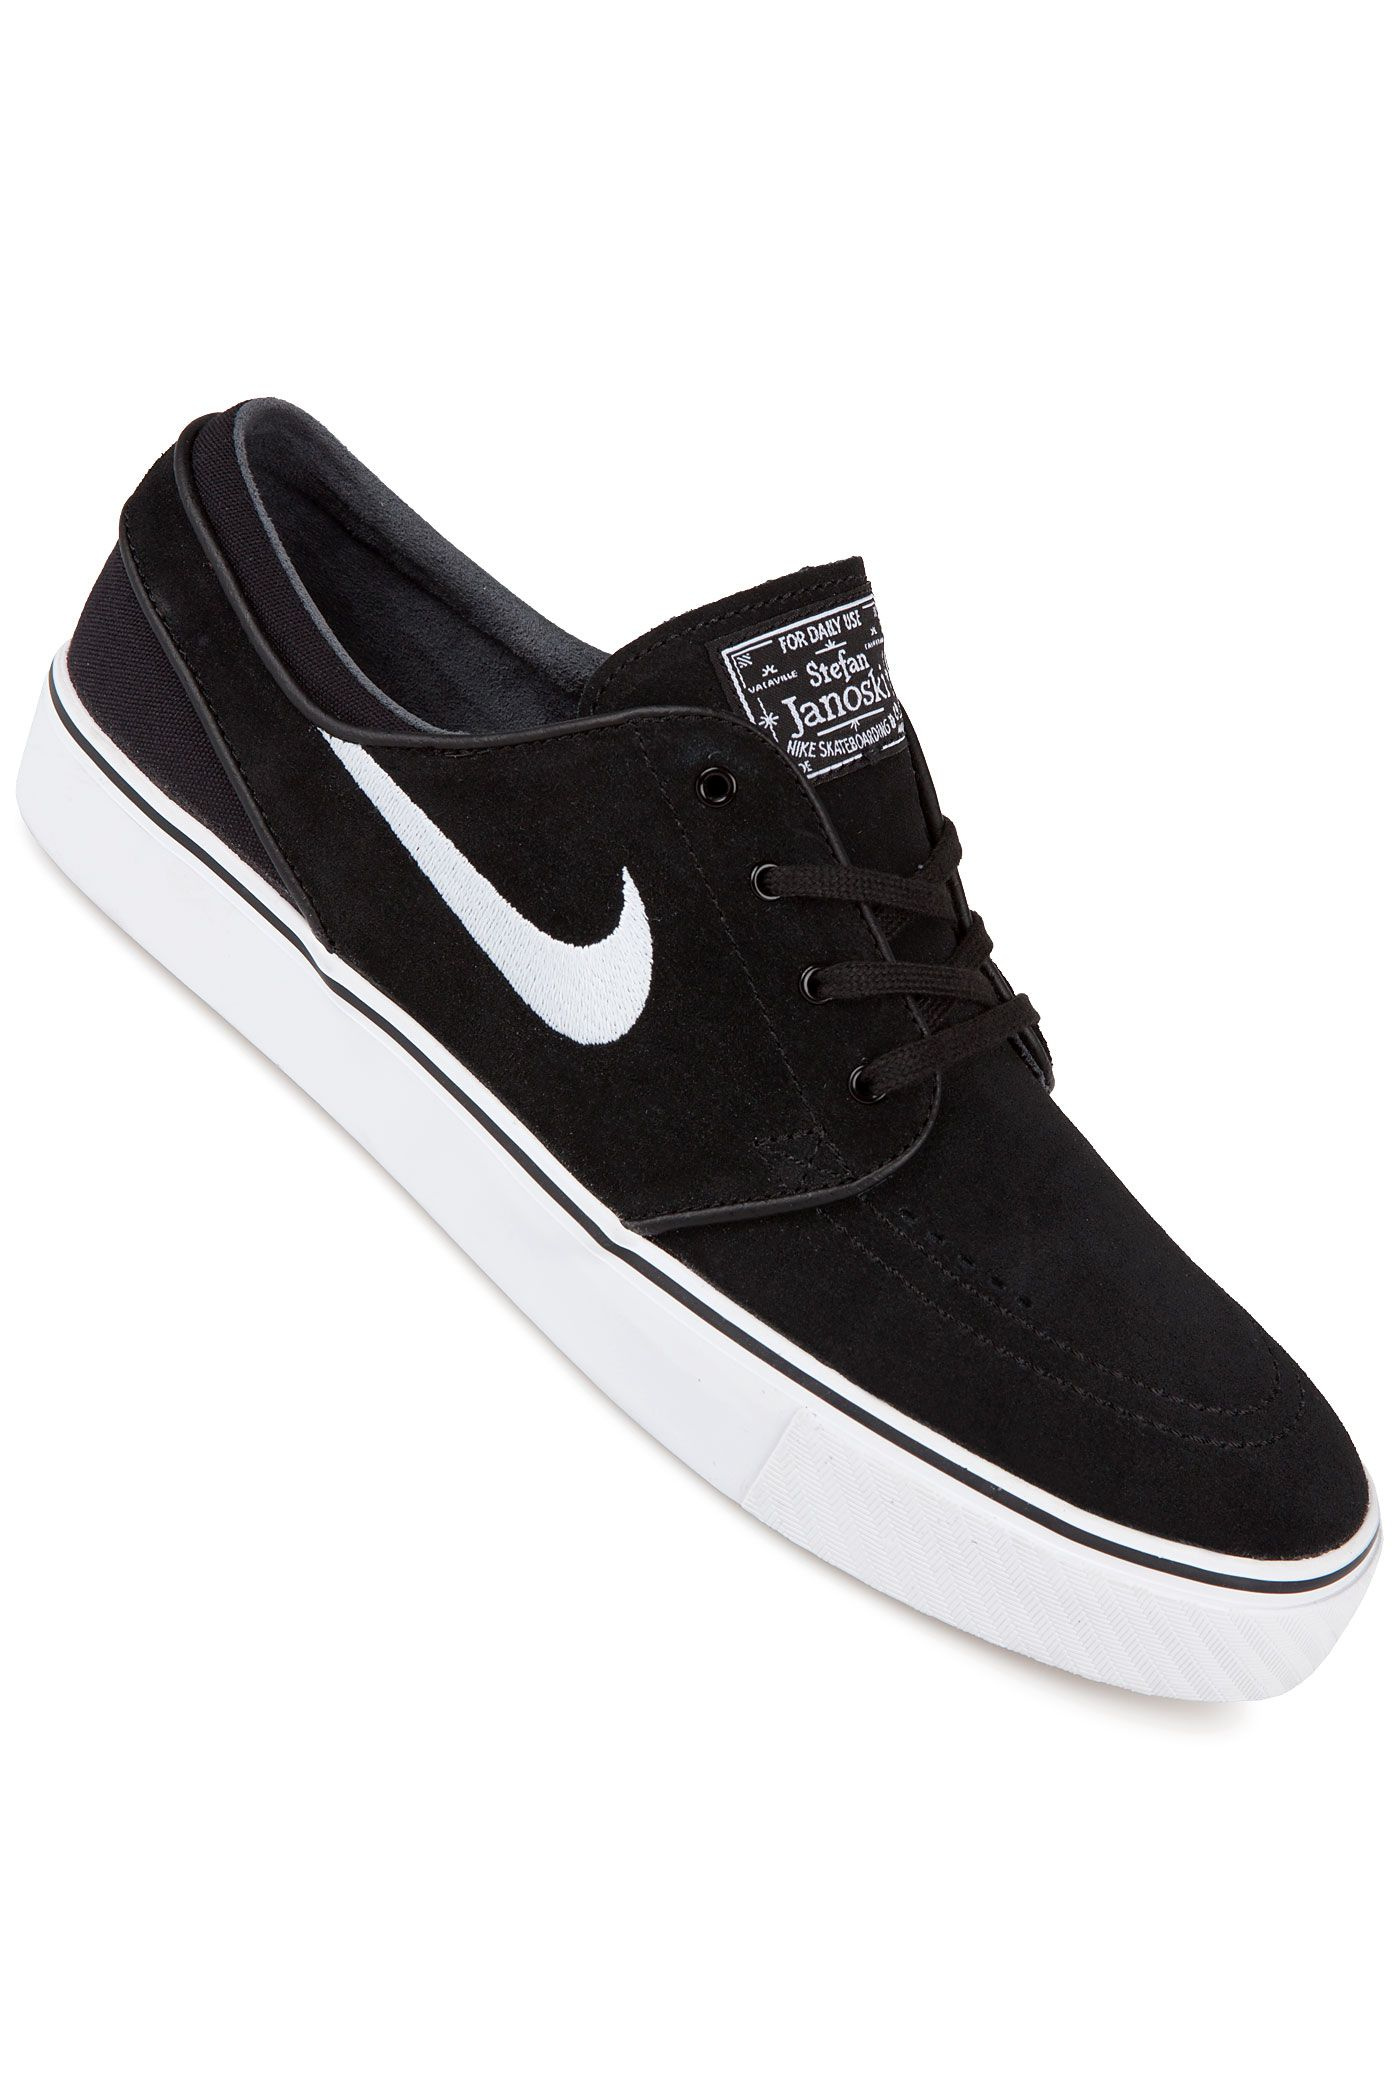 uk availability b1188 ec219 Nike SB Zoom Stefan Janoski Skateboarding Shoe | Boys & Girls love them!